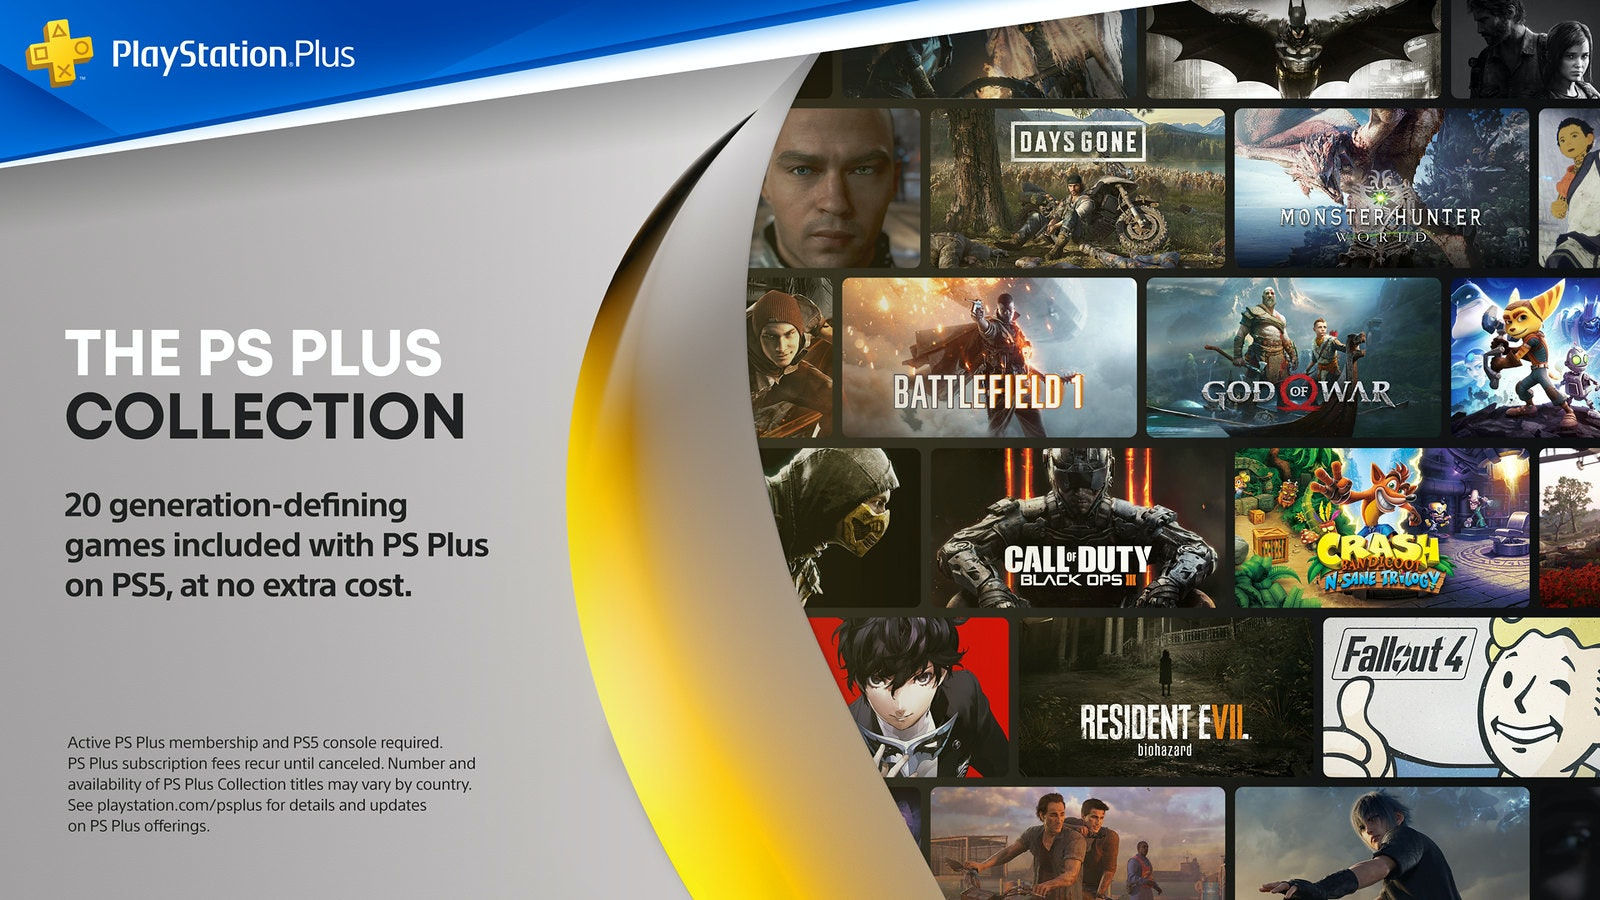 照片中提到了PlayStation.Plus、DAYS GONE、MONSTER HUNTER,跟的PlayStation、動視暴雪有關,包含了PlayStation Plus、的PlayStation 5、的PlayStation 4、PlayStation Plus、索尼互動娛樂